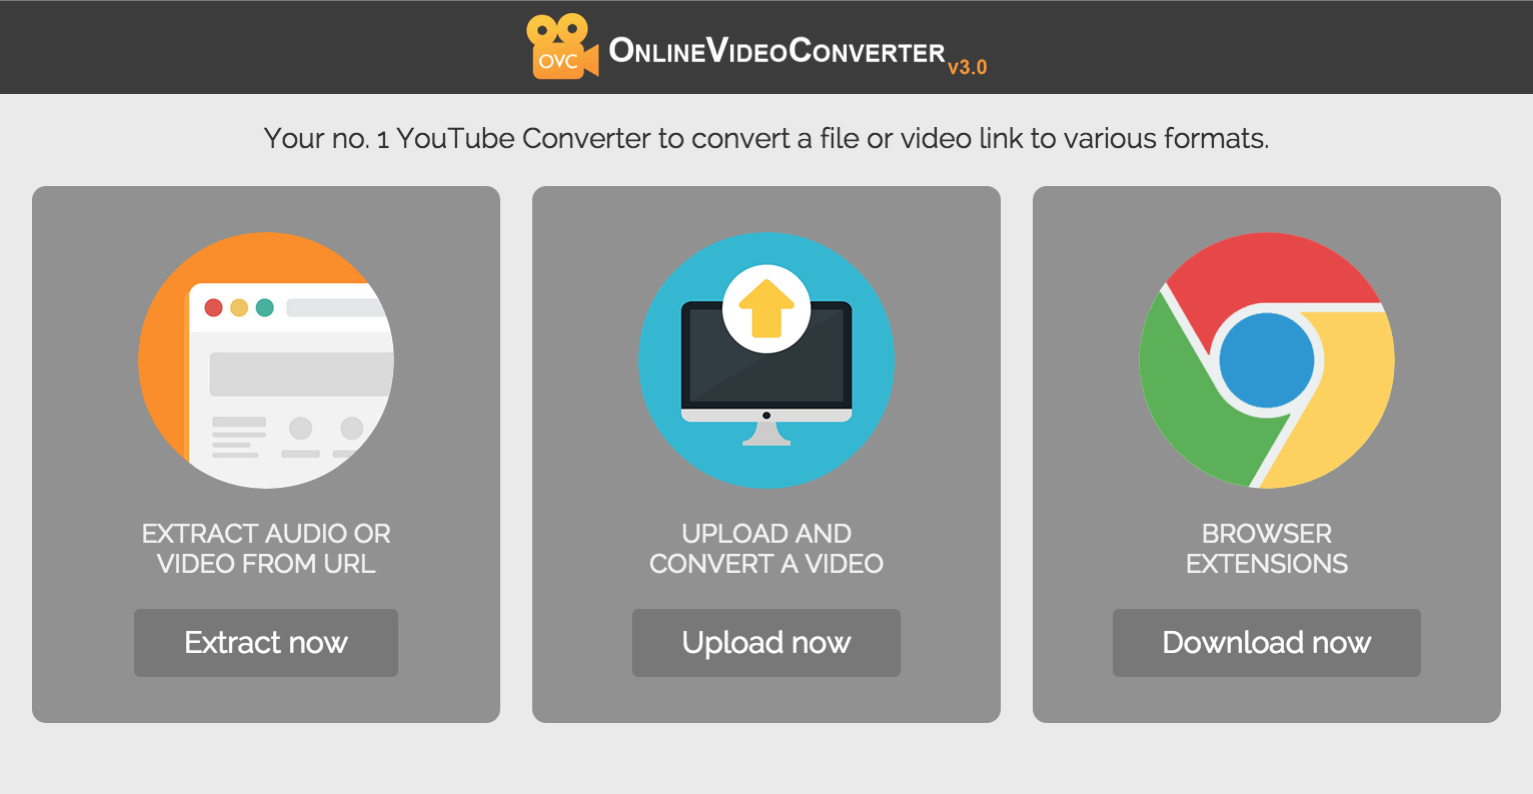 Online video converter and youtube downloader azliless for Convert image to blueprint online